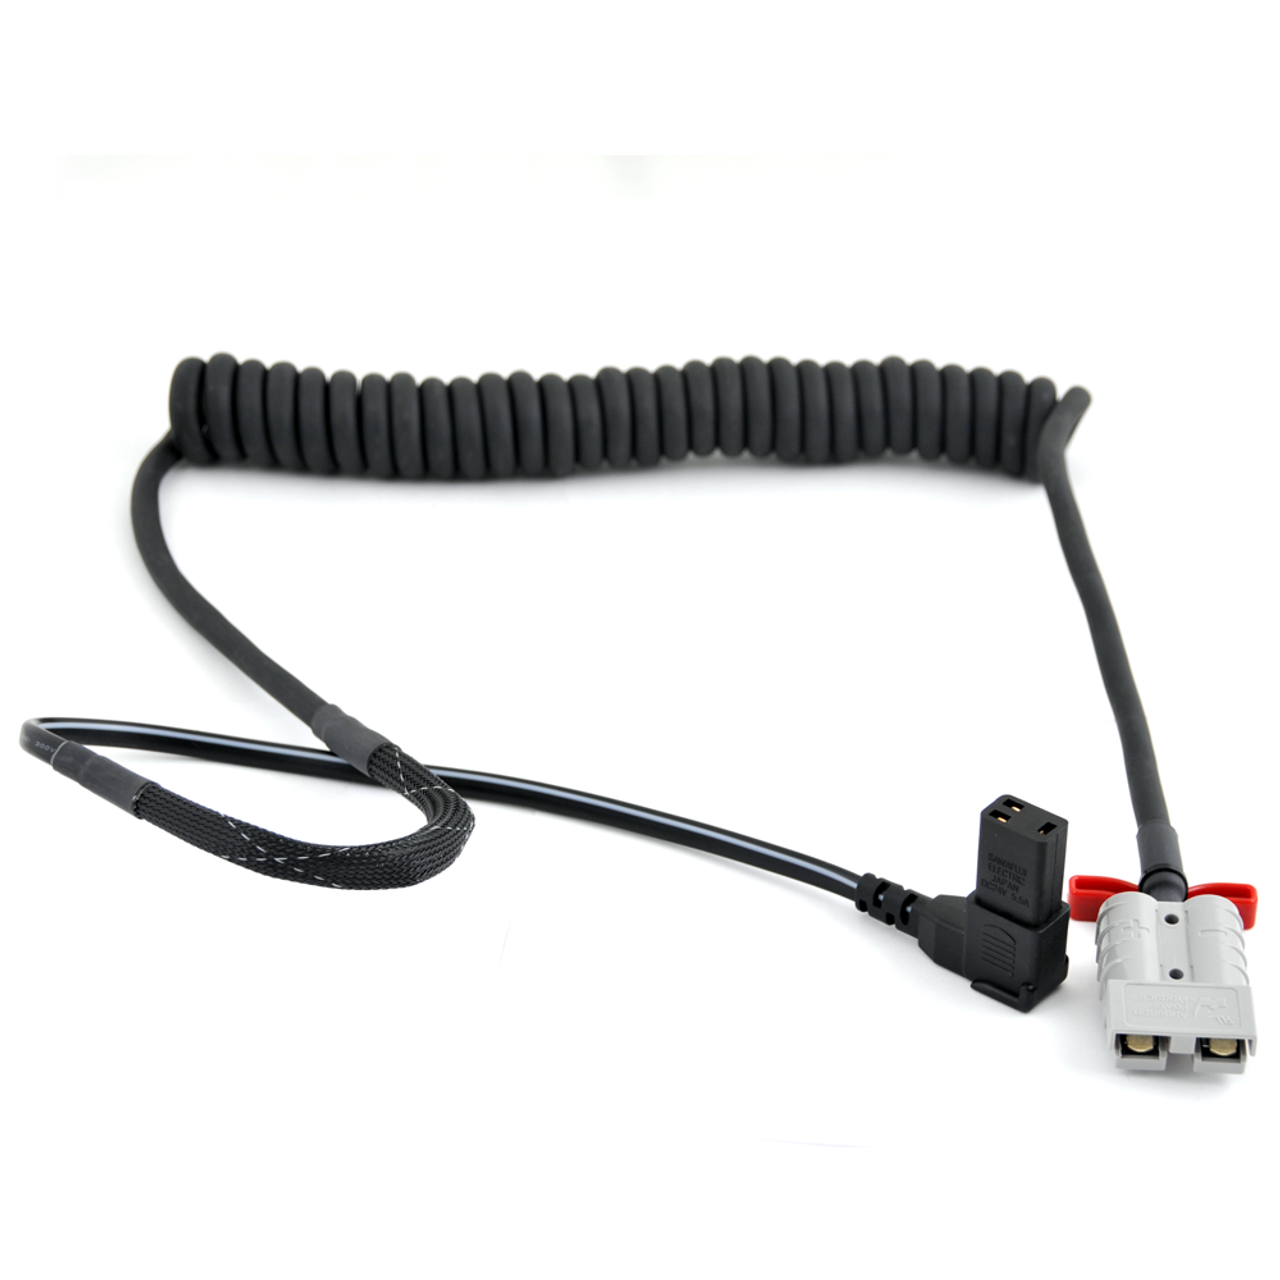 Anderson SB50 DC Power Cable for ARB/Engel 3-pin (APC-8)